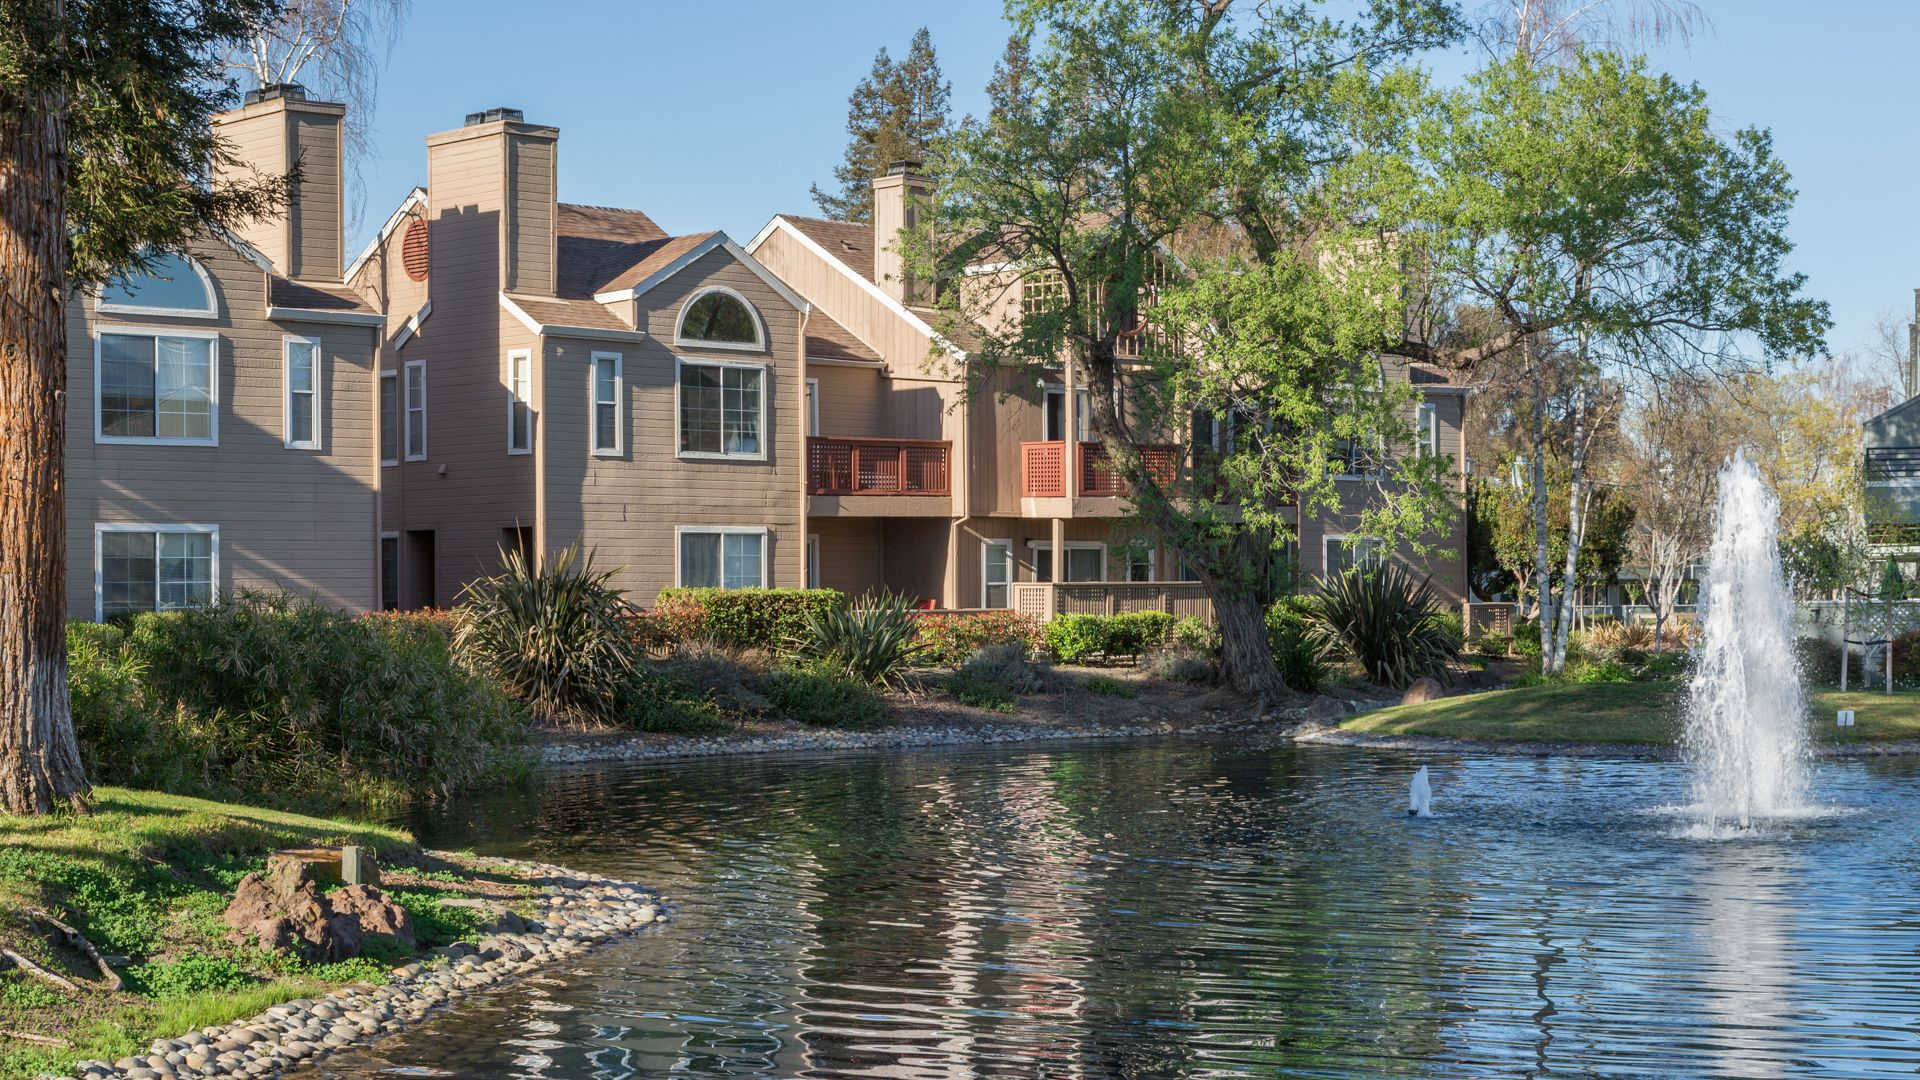 Wood Creek Apartments - Pond